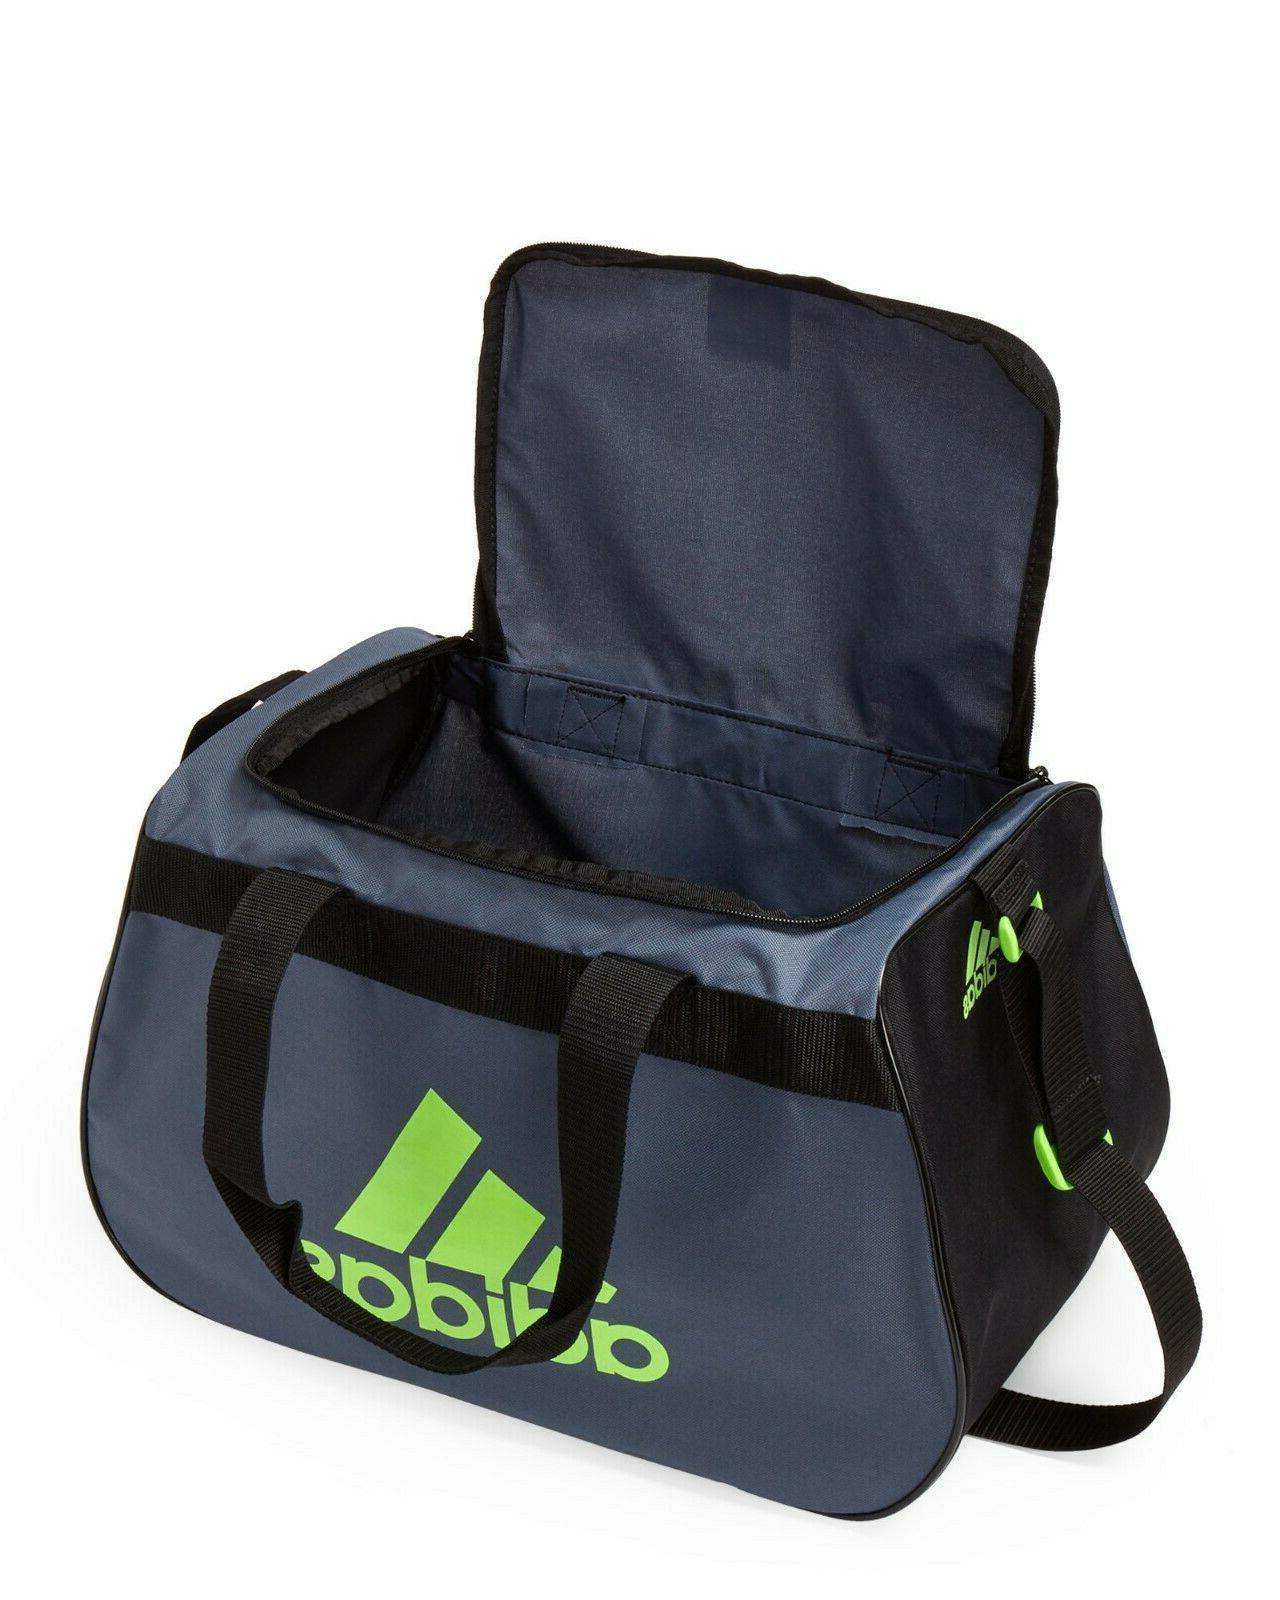 ADIDAS Diablo SMALL Duffel TOP Locker NEW